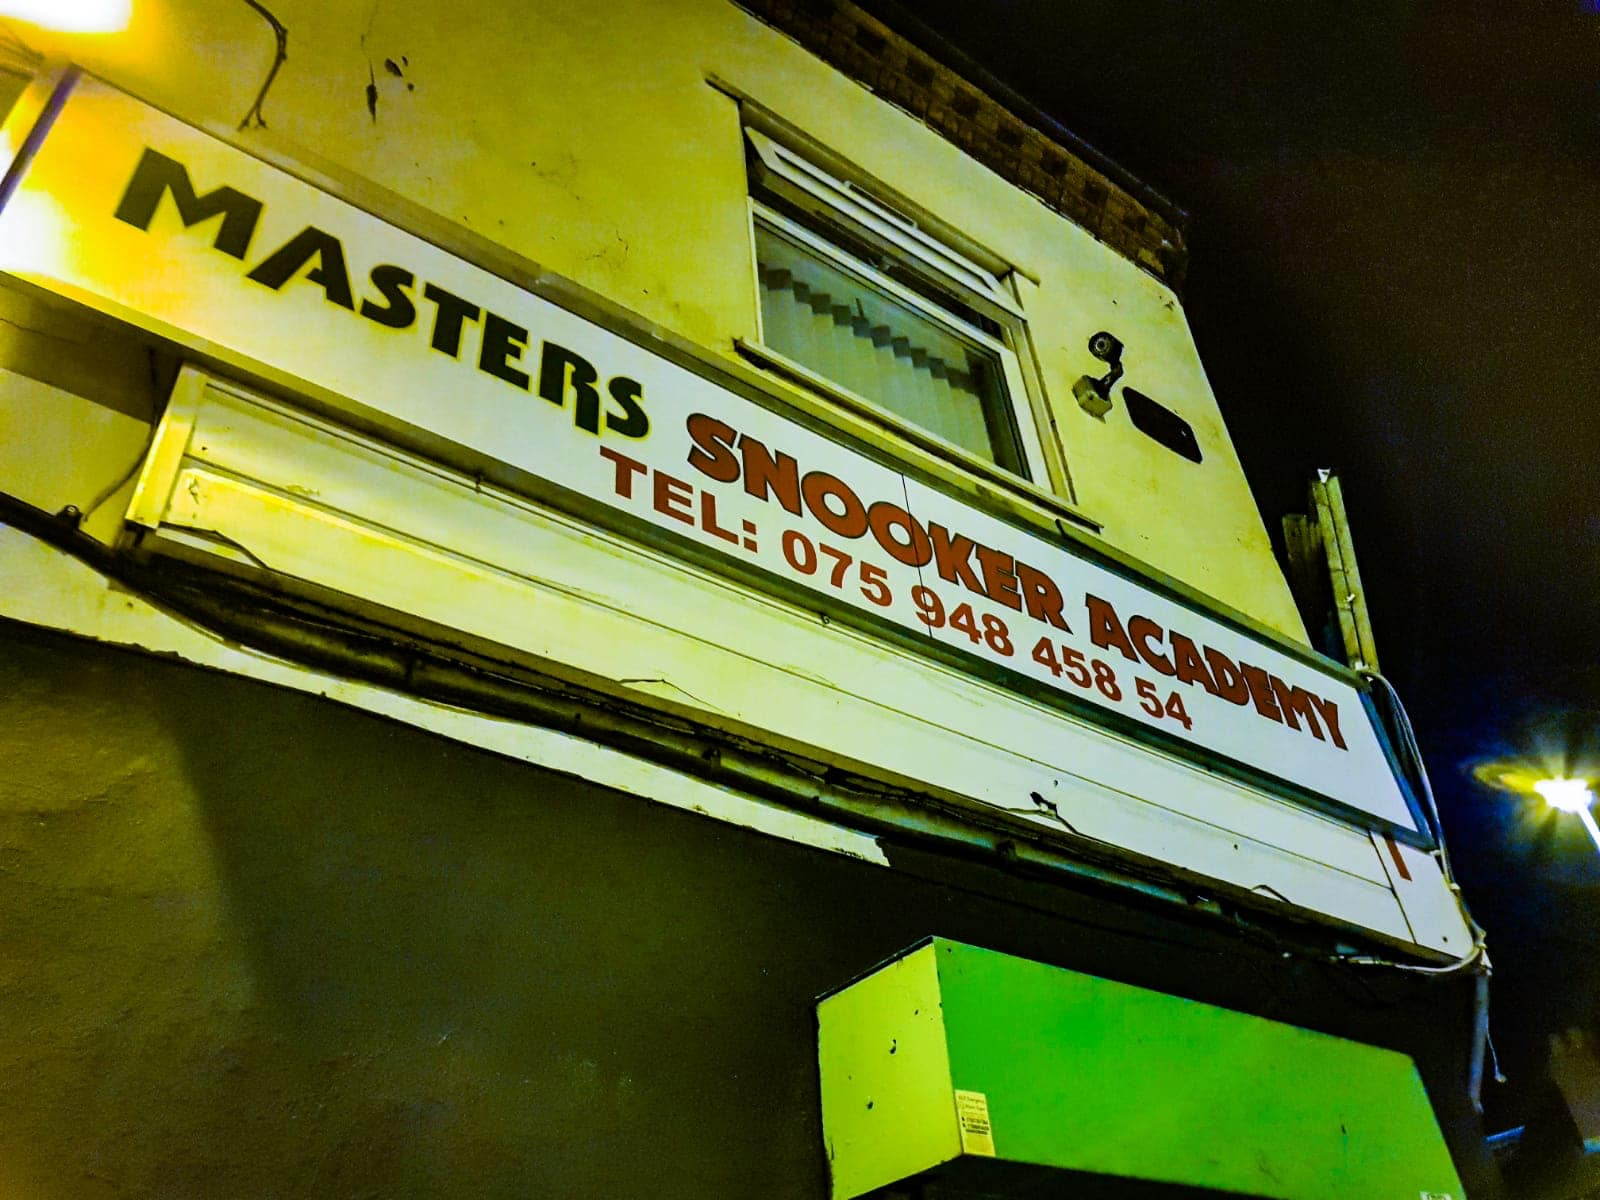 Masters Snooker Academy